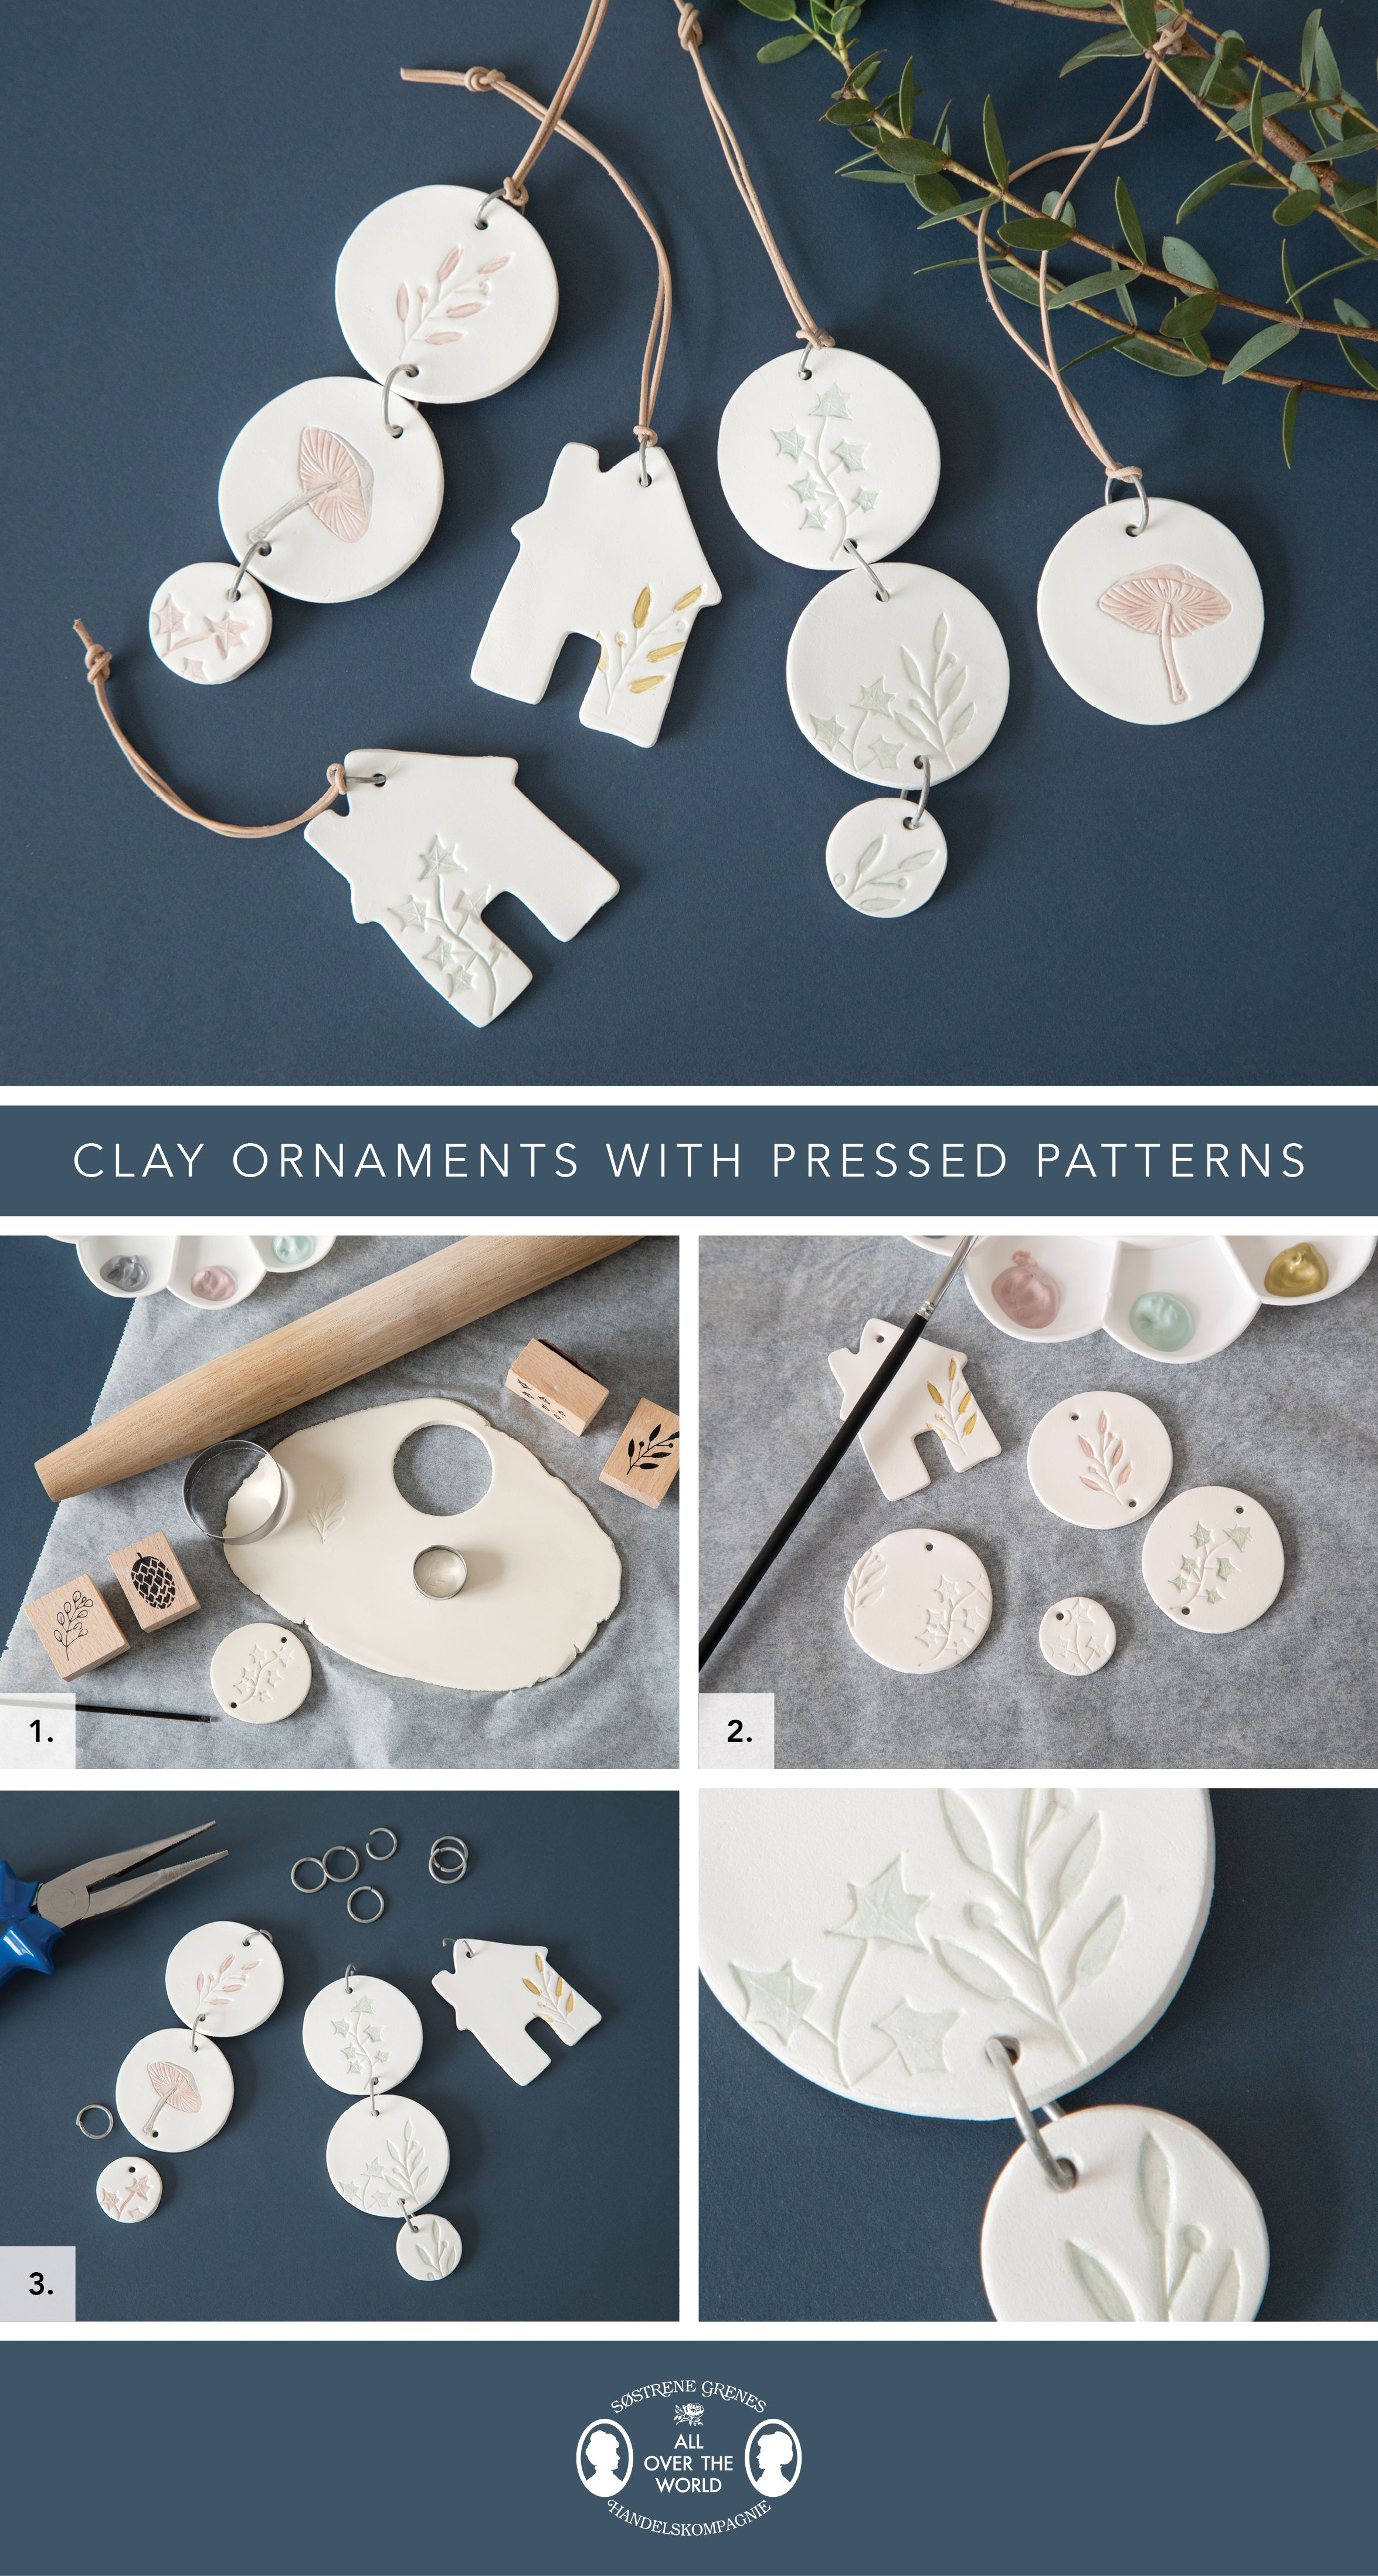 Photo of Clay ornaments with pressed patterns